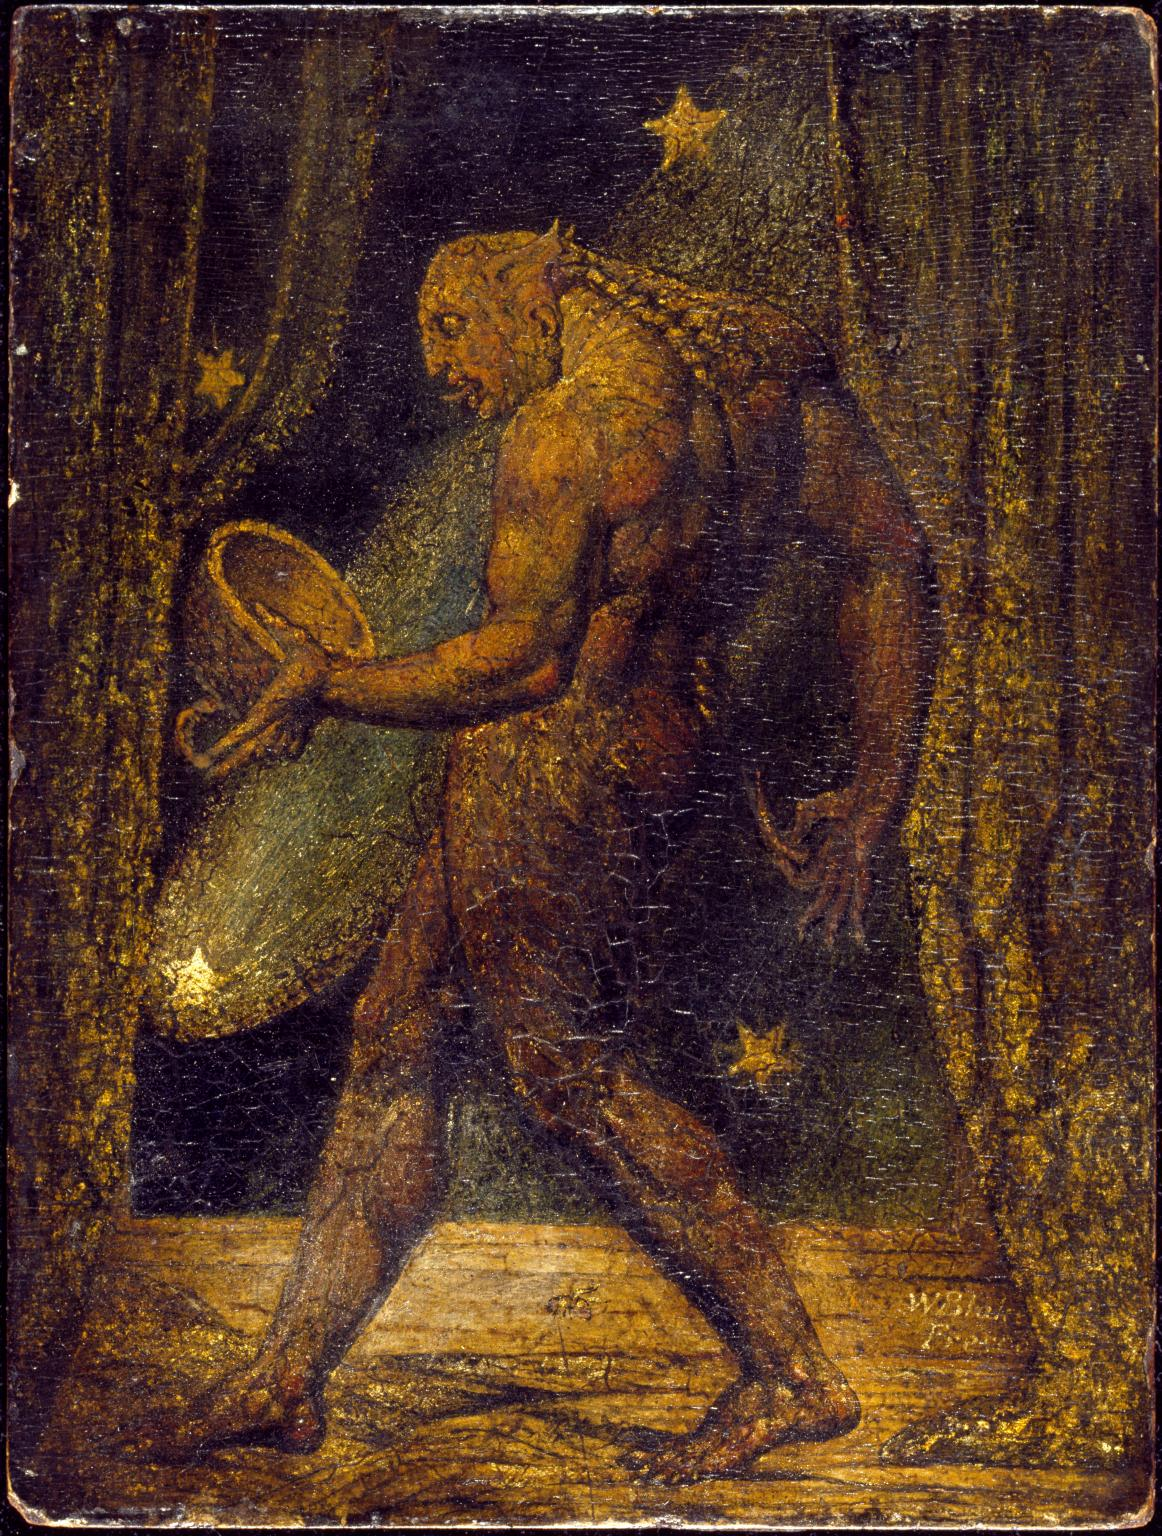 A painting of a monstrous scaly humanoid figure holding a bowl-like object, framed by curtains and stars.